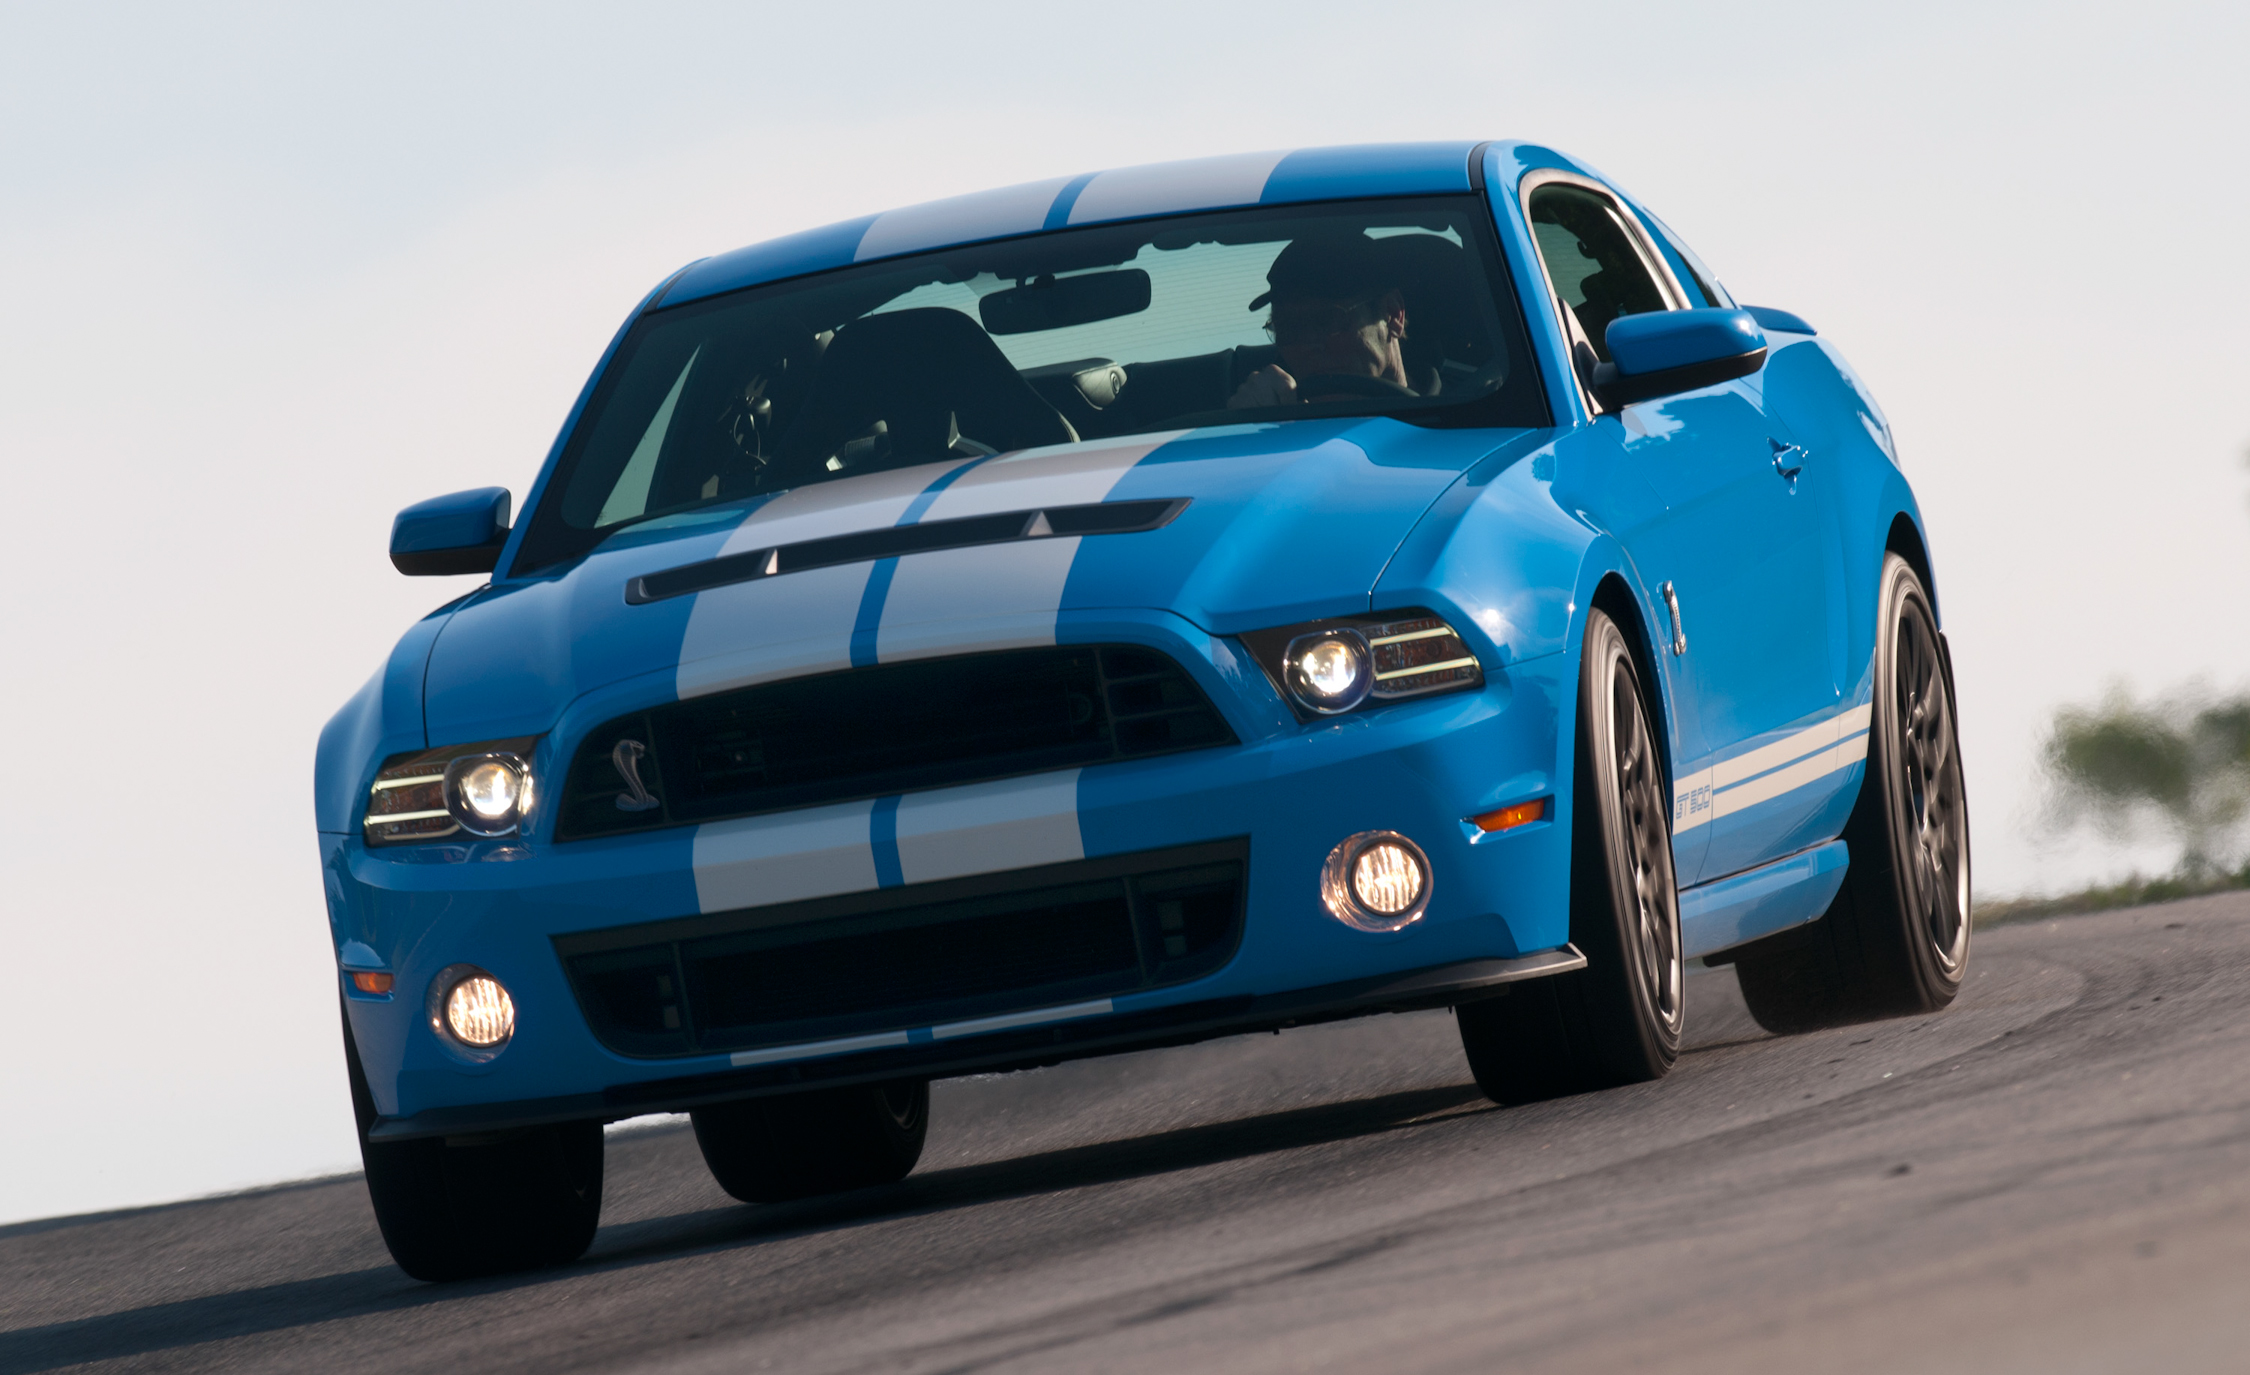 2013 Ford Mustang Shelby GT500 Blue Test Drive Front (View 34 of 47)